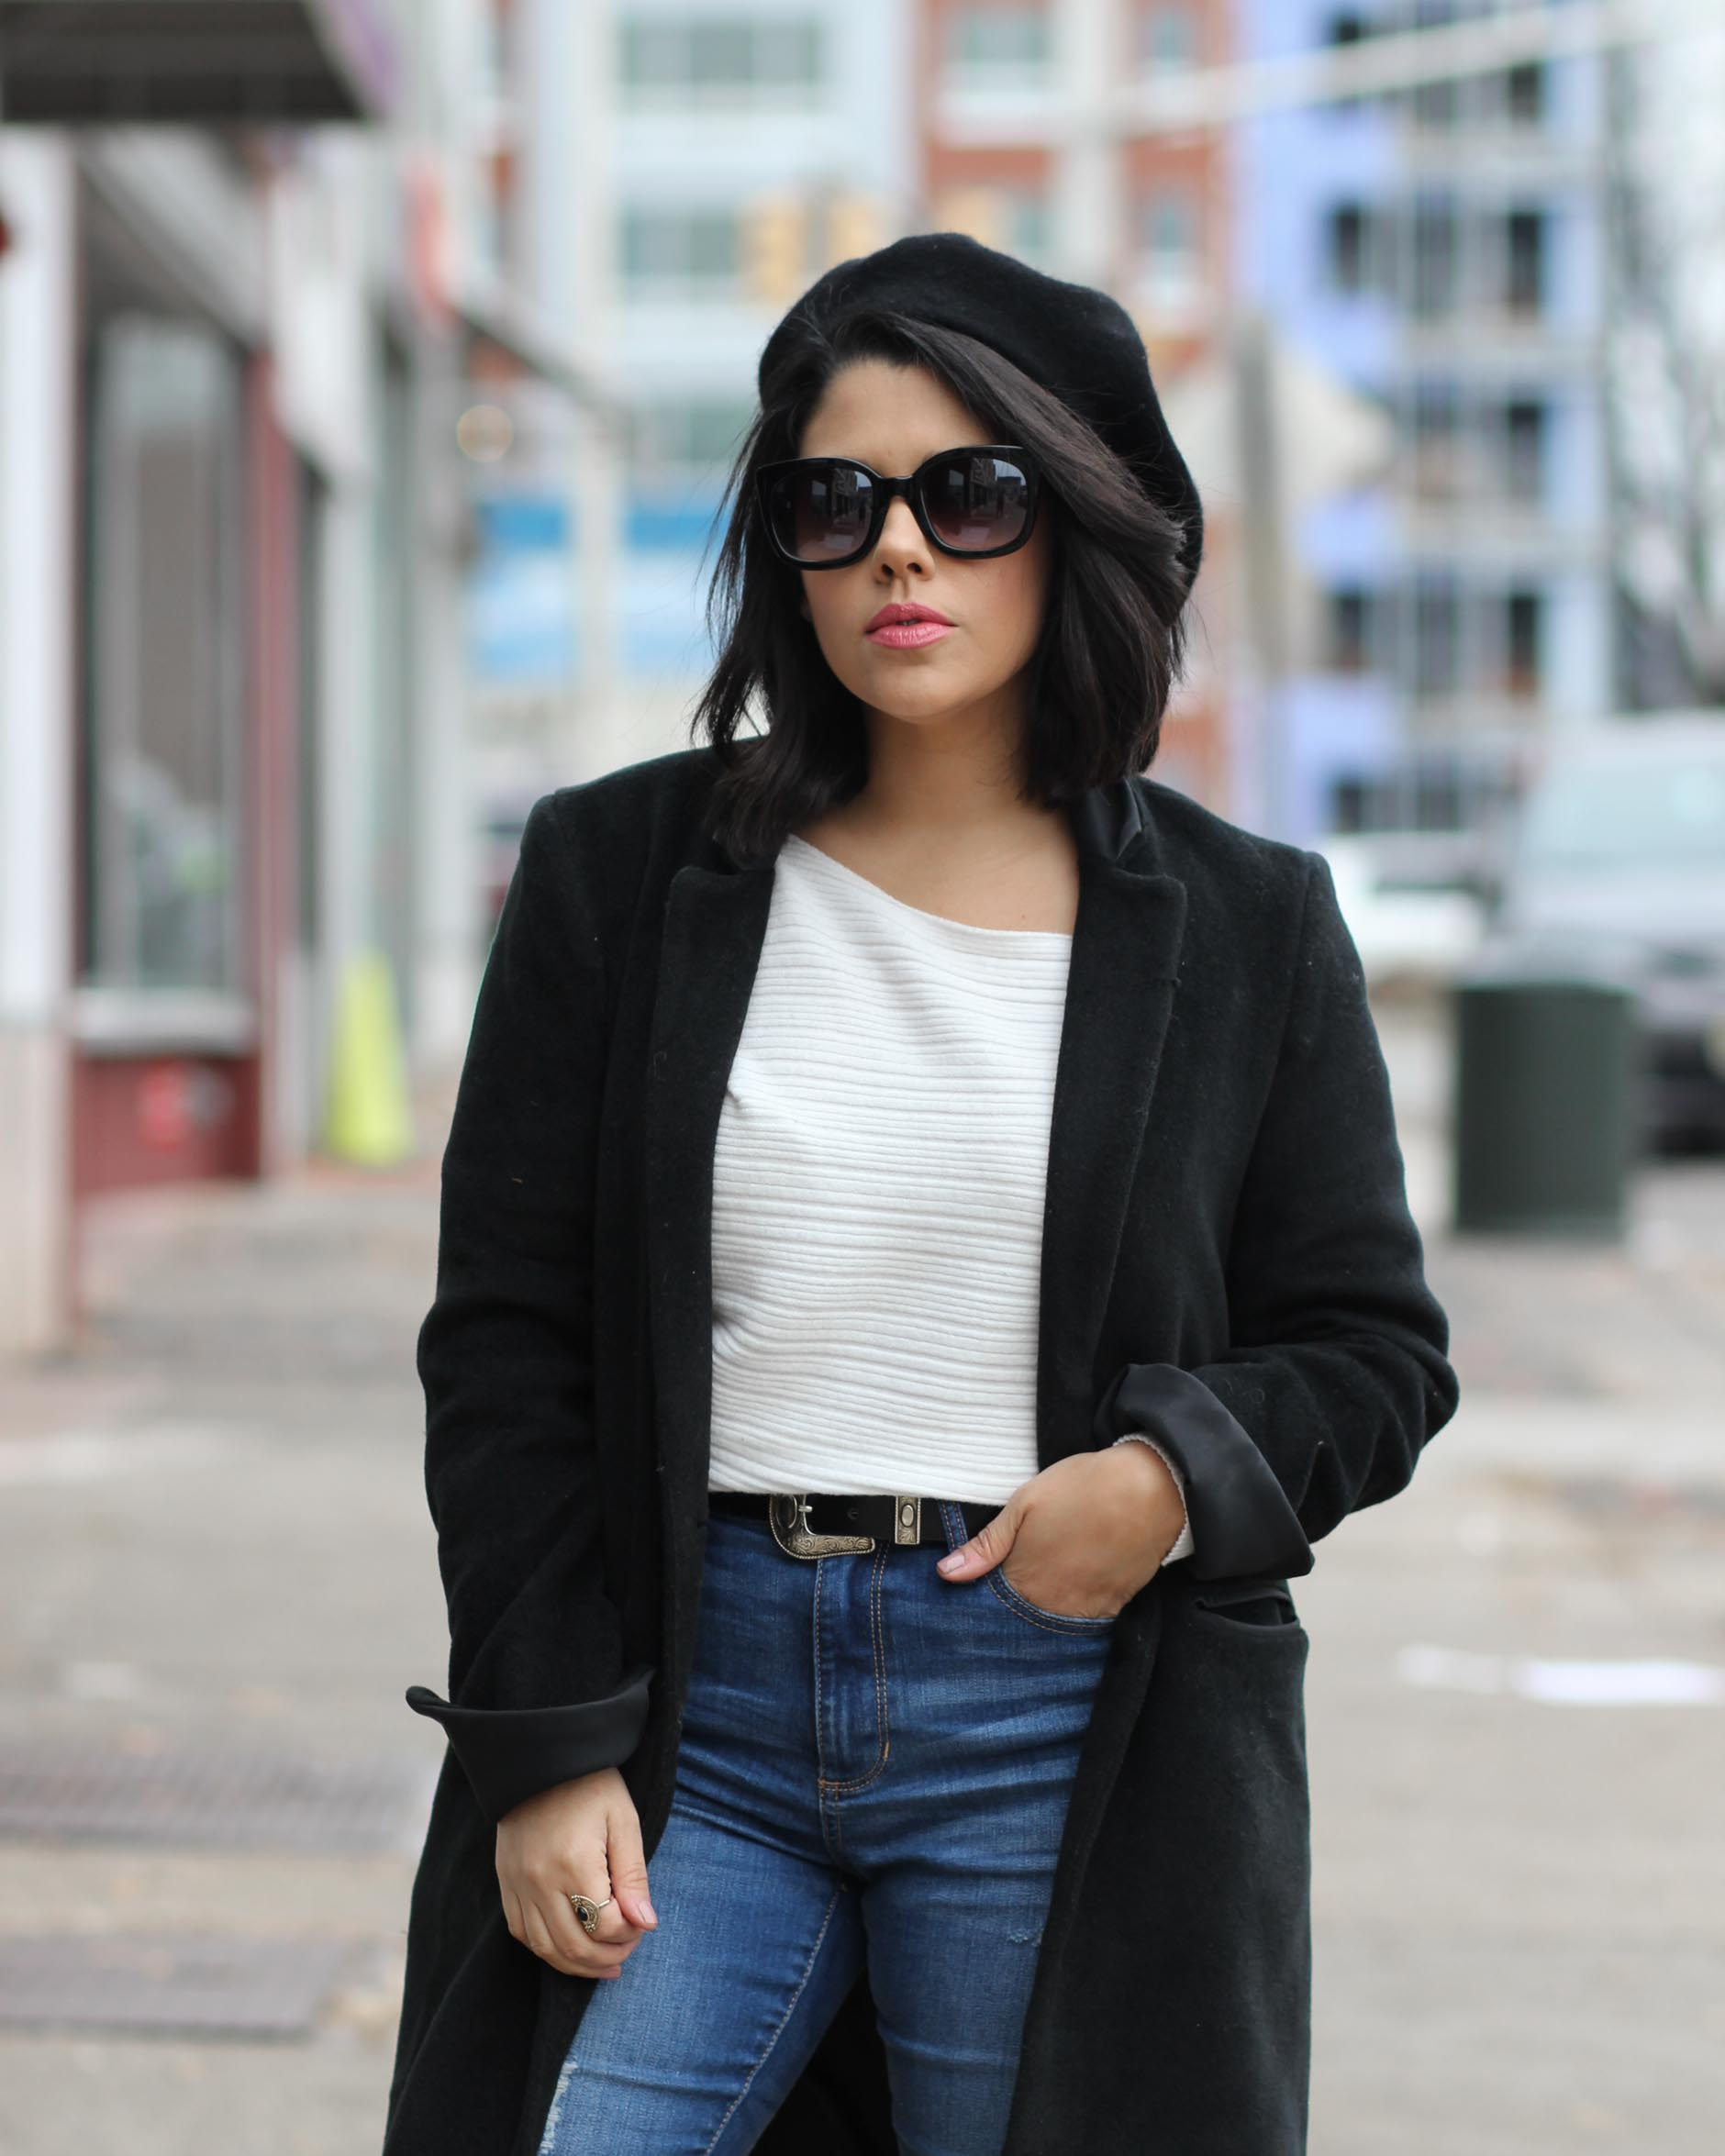 lifestyle blogger naty michele wearing a beret with a black coat